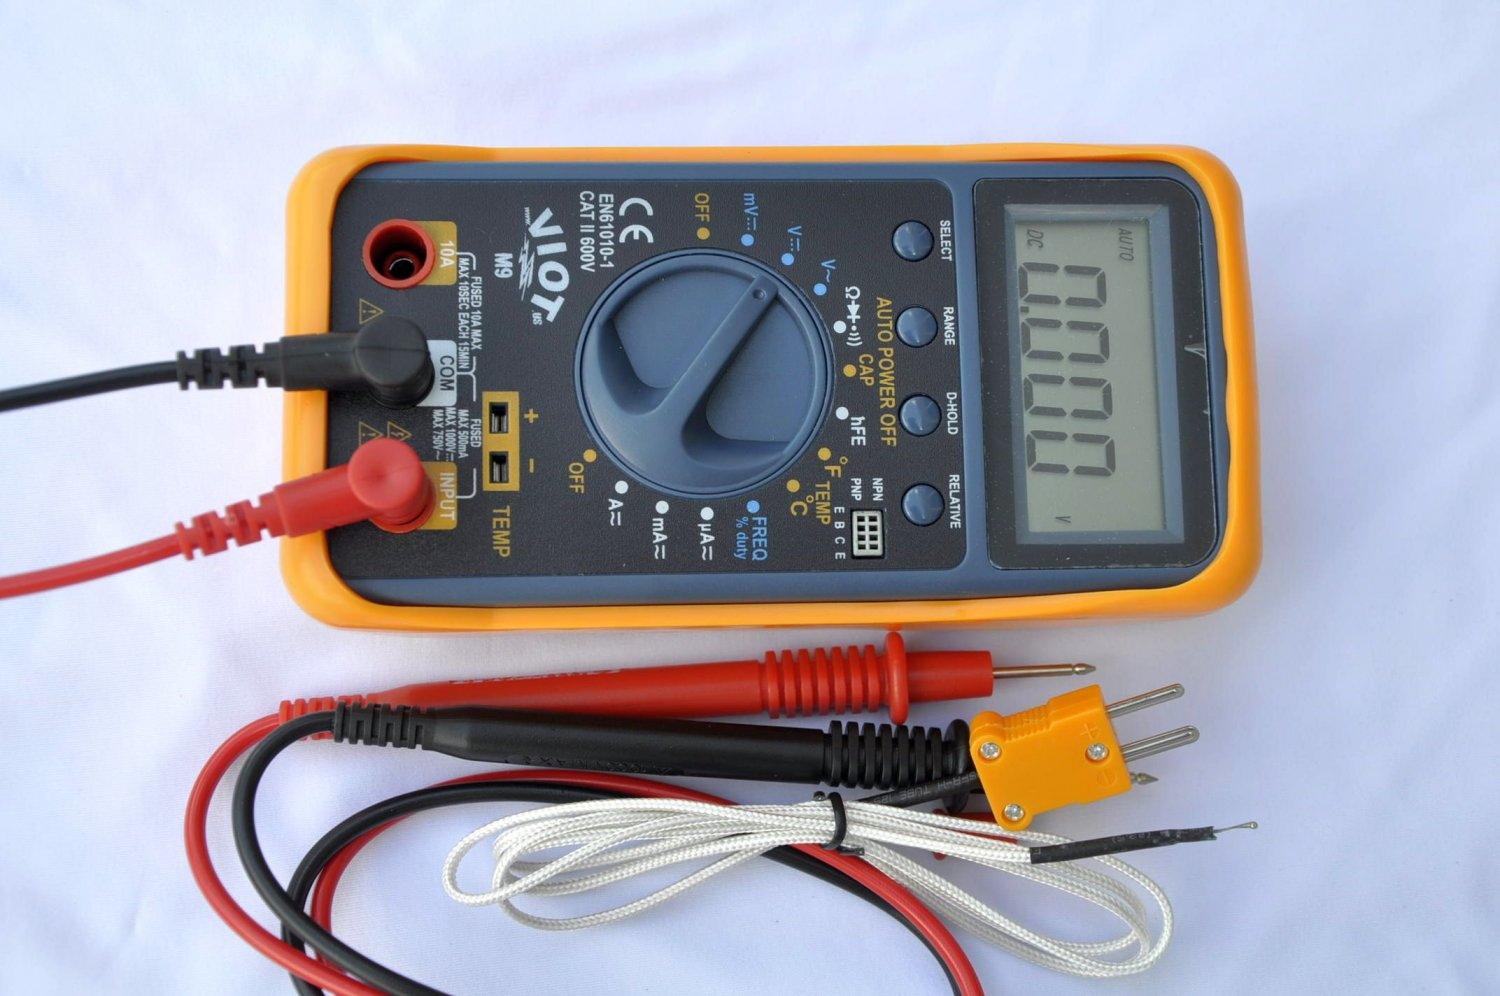 Check Ac Capacitor With Multimeter : Ac dc ammeter ohm volt multimeter dmm capacitor tester